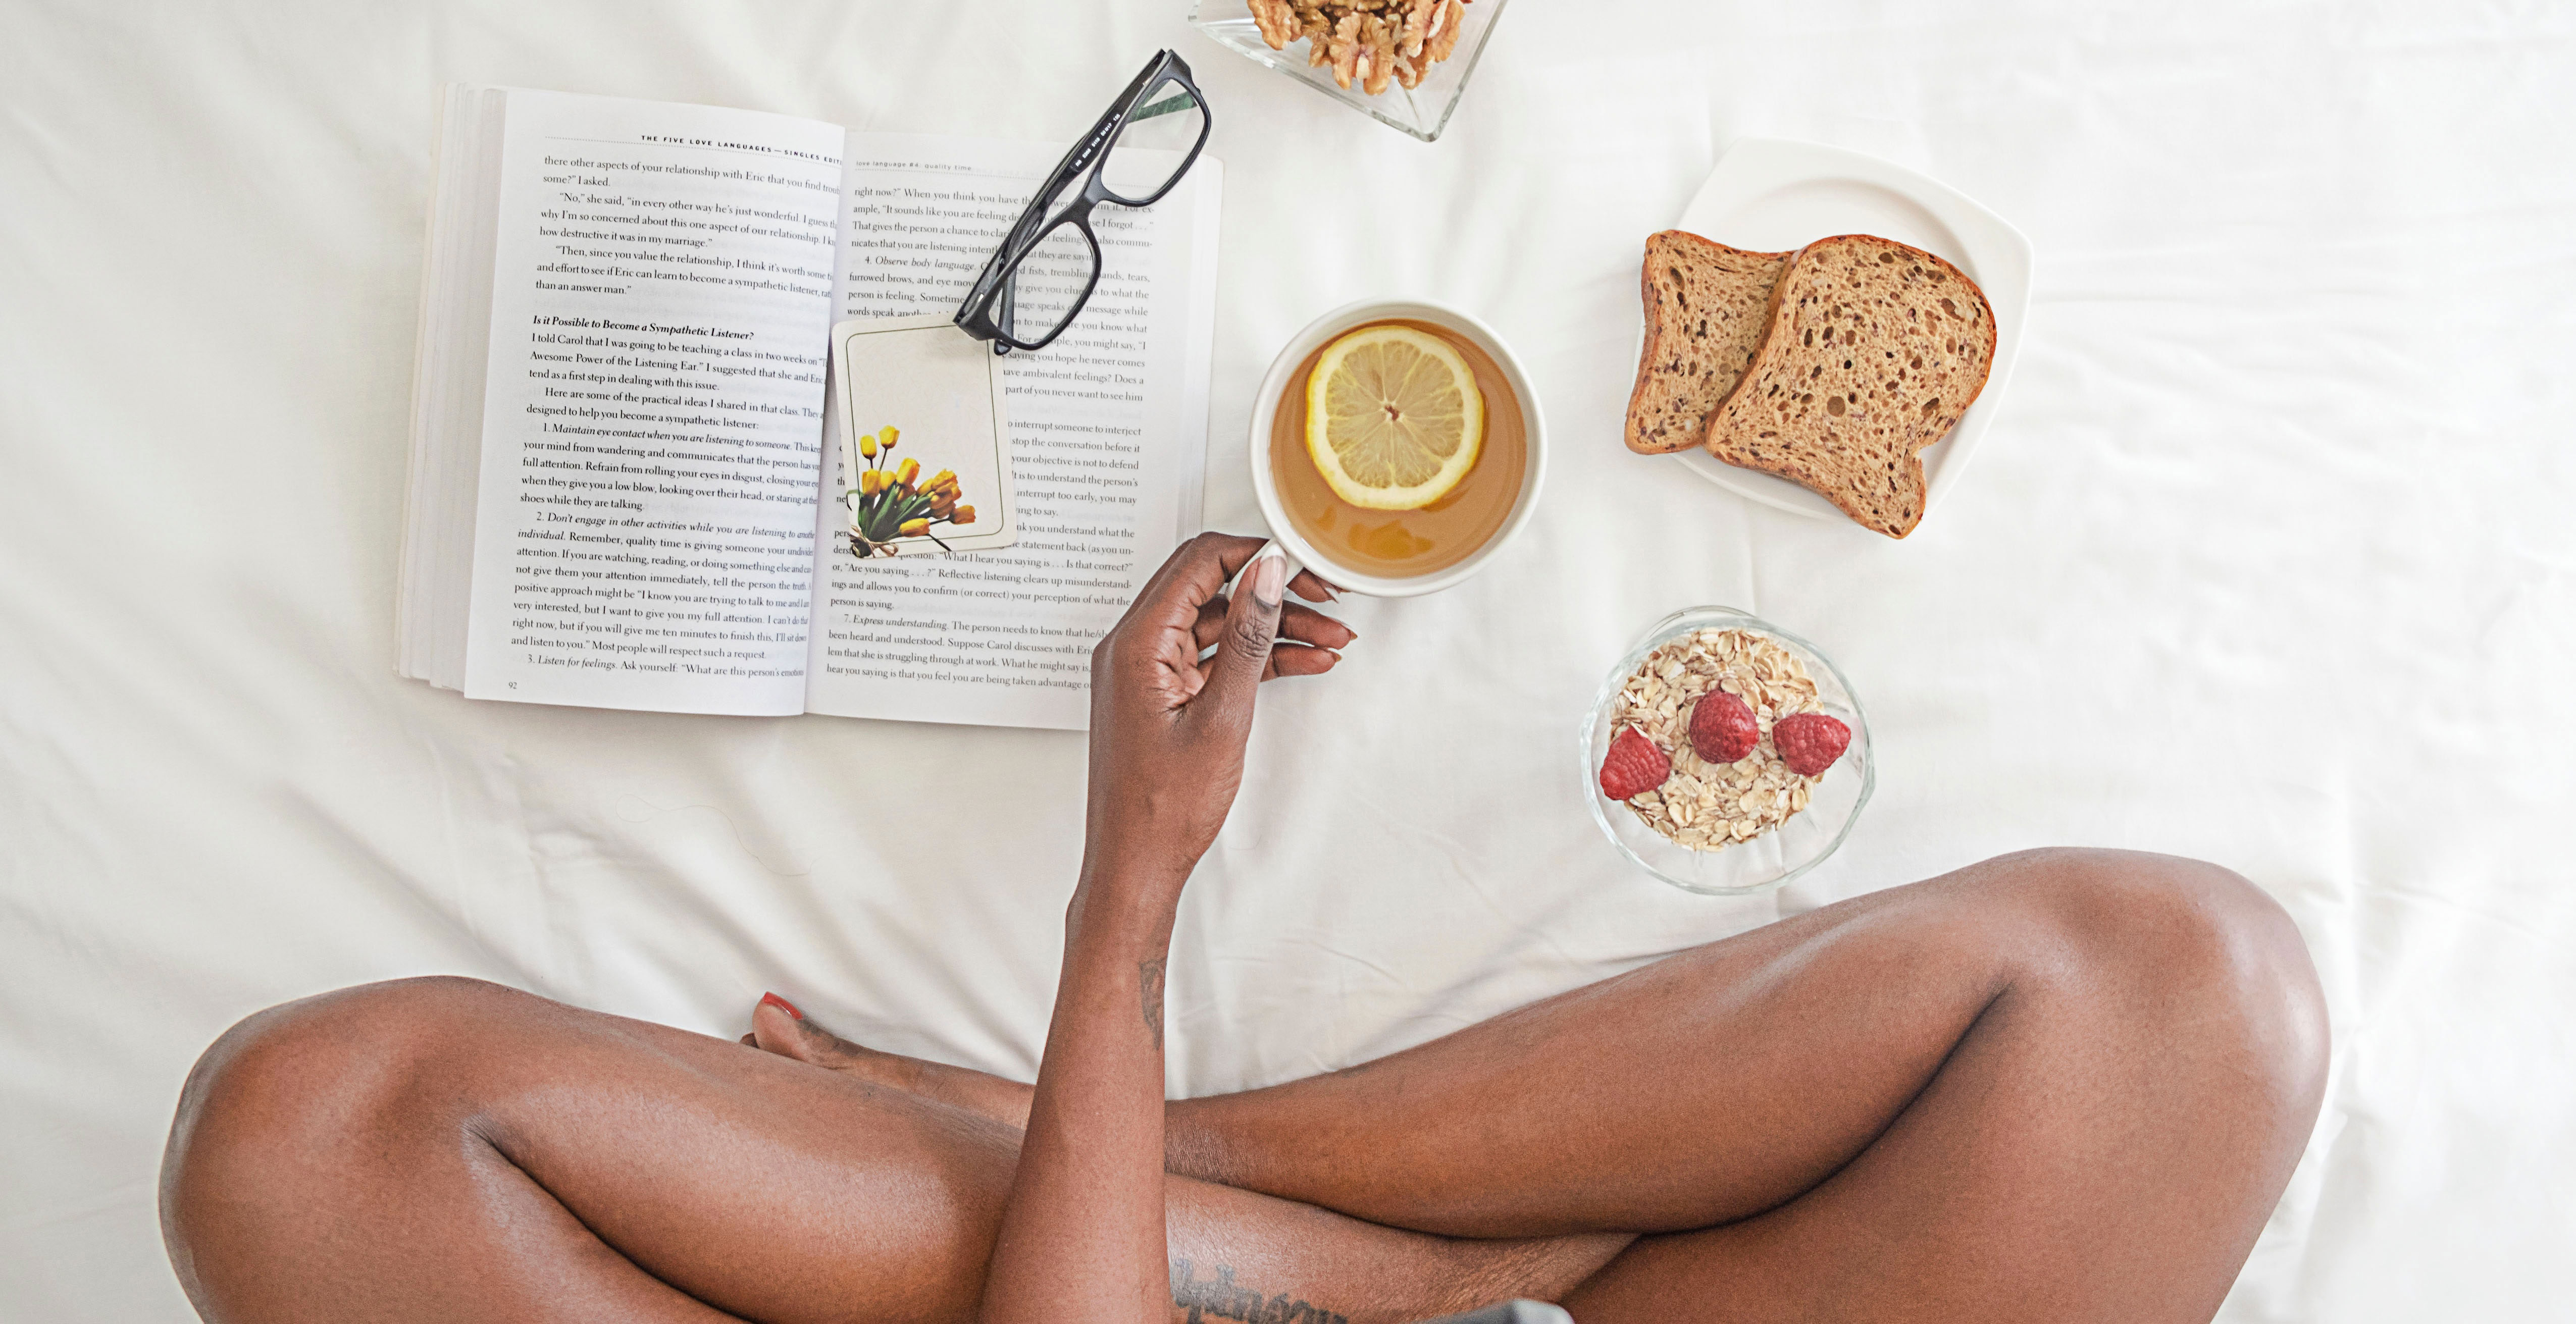 bed-book-breads-1065588